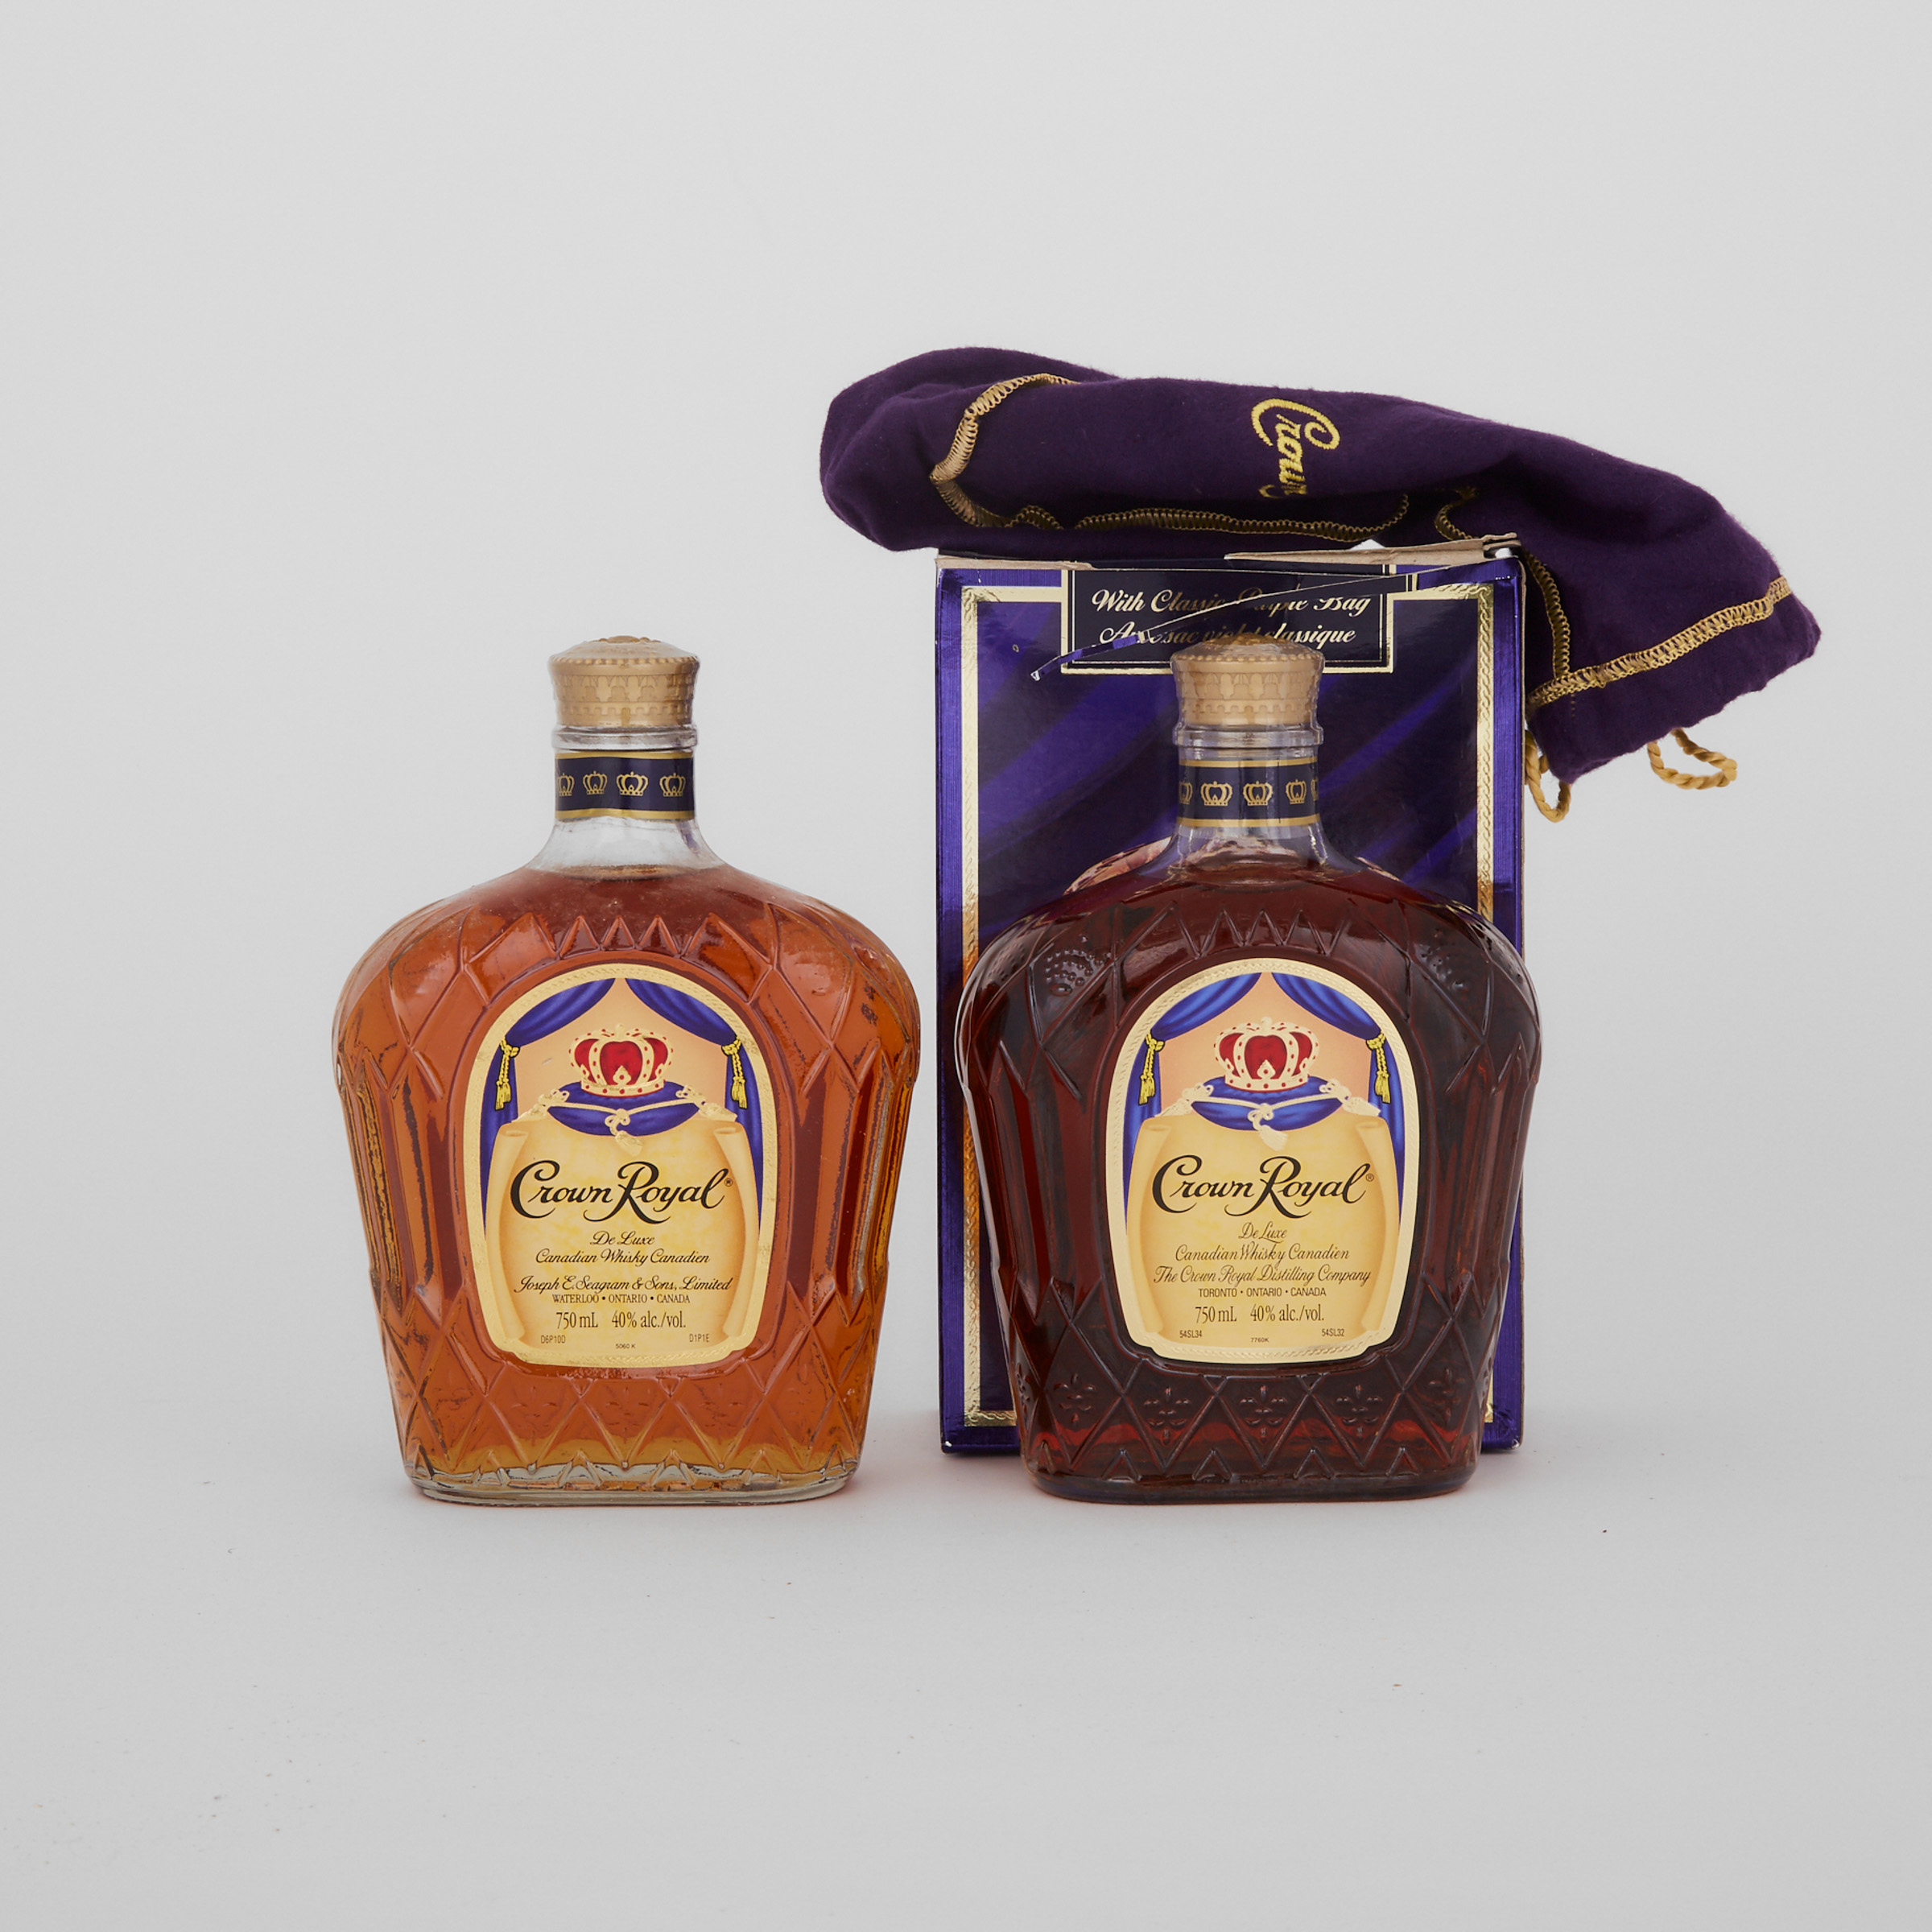 CROWN ROYAL DELUXE CANADIAN WHISKY (TWO 750 ML)